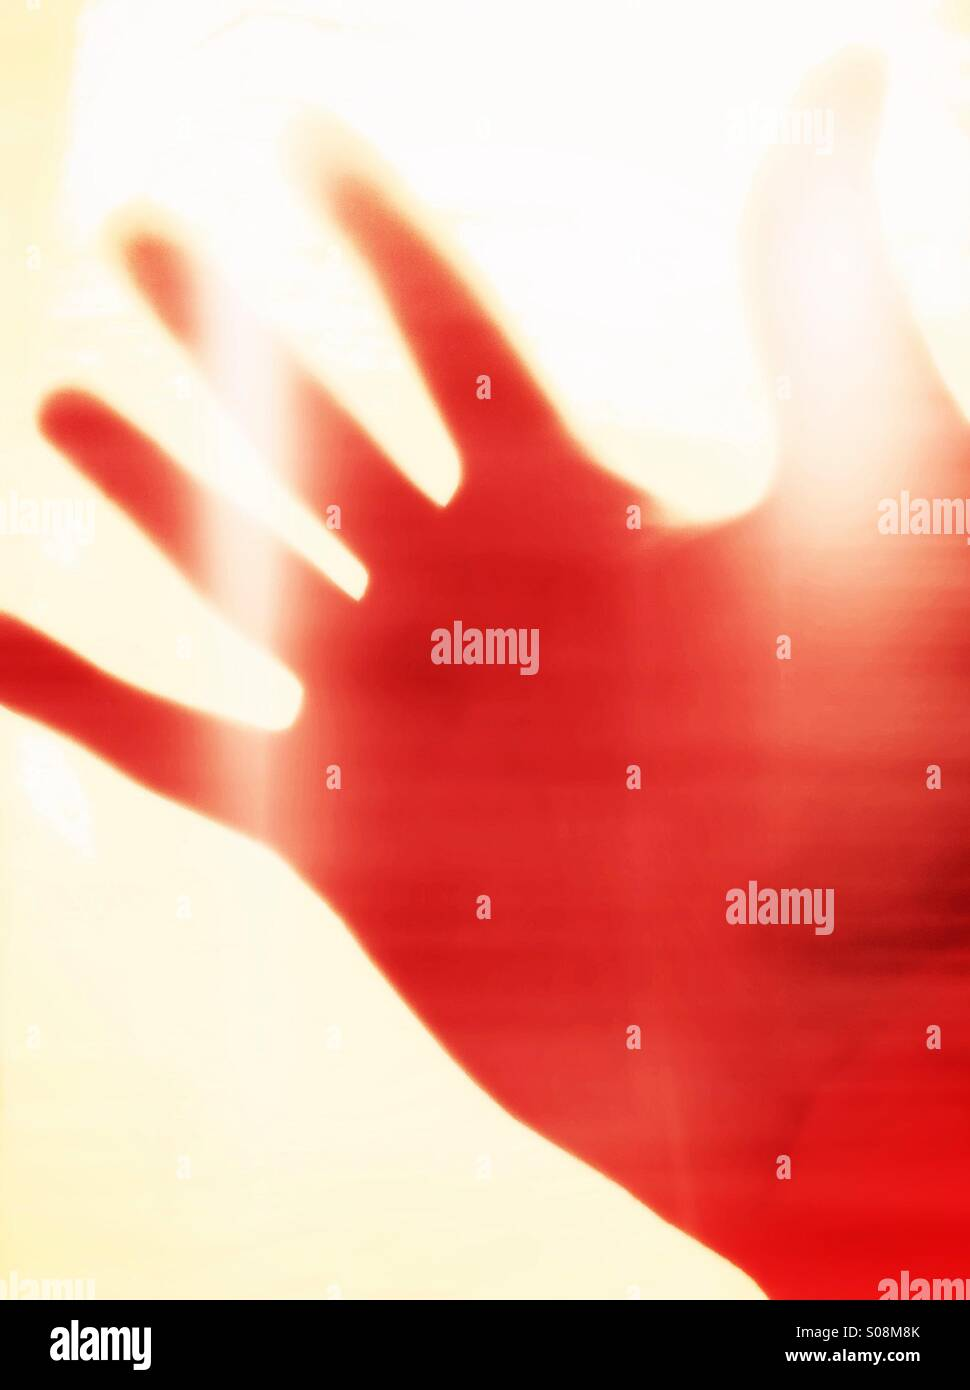 Hand, abstrakte Stockbild